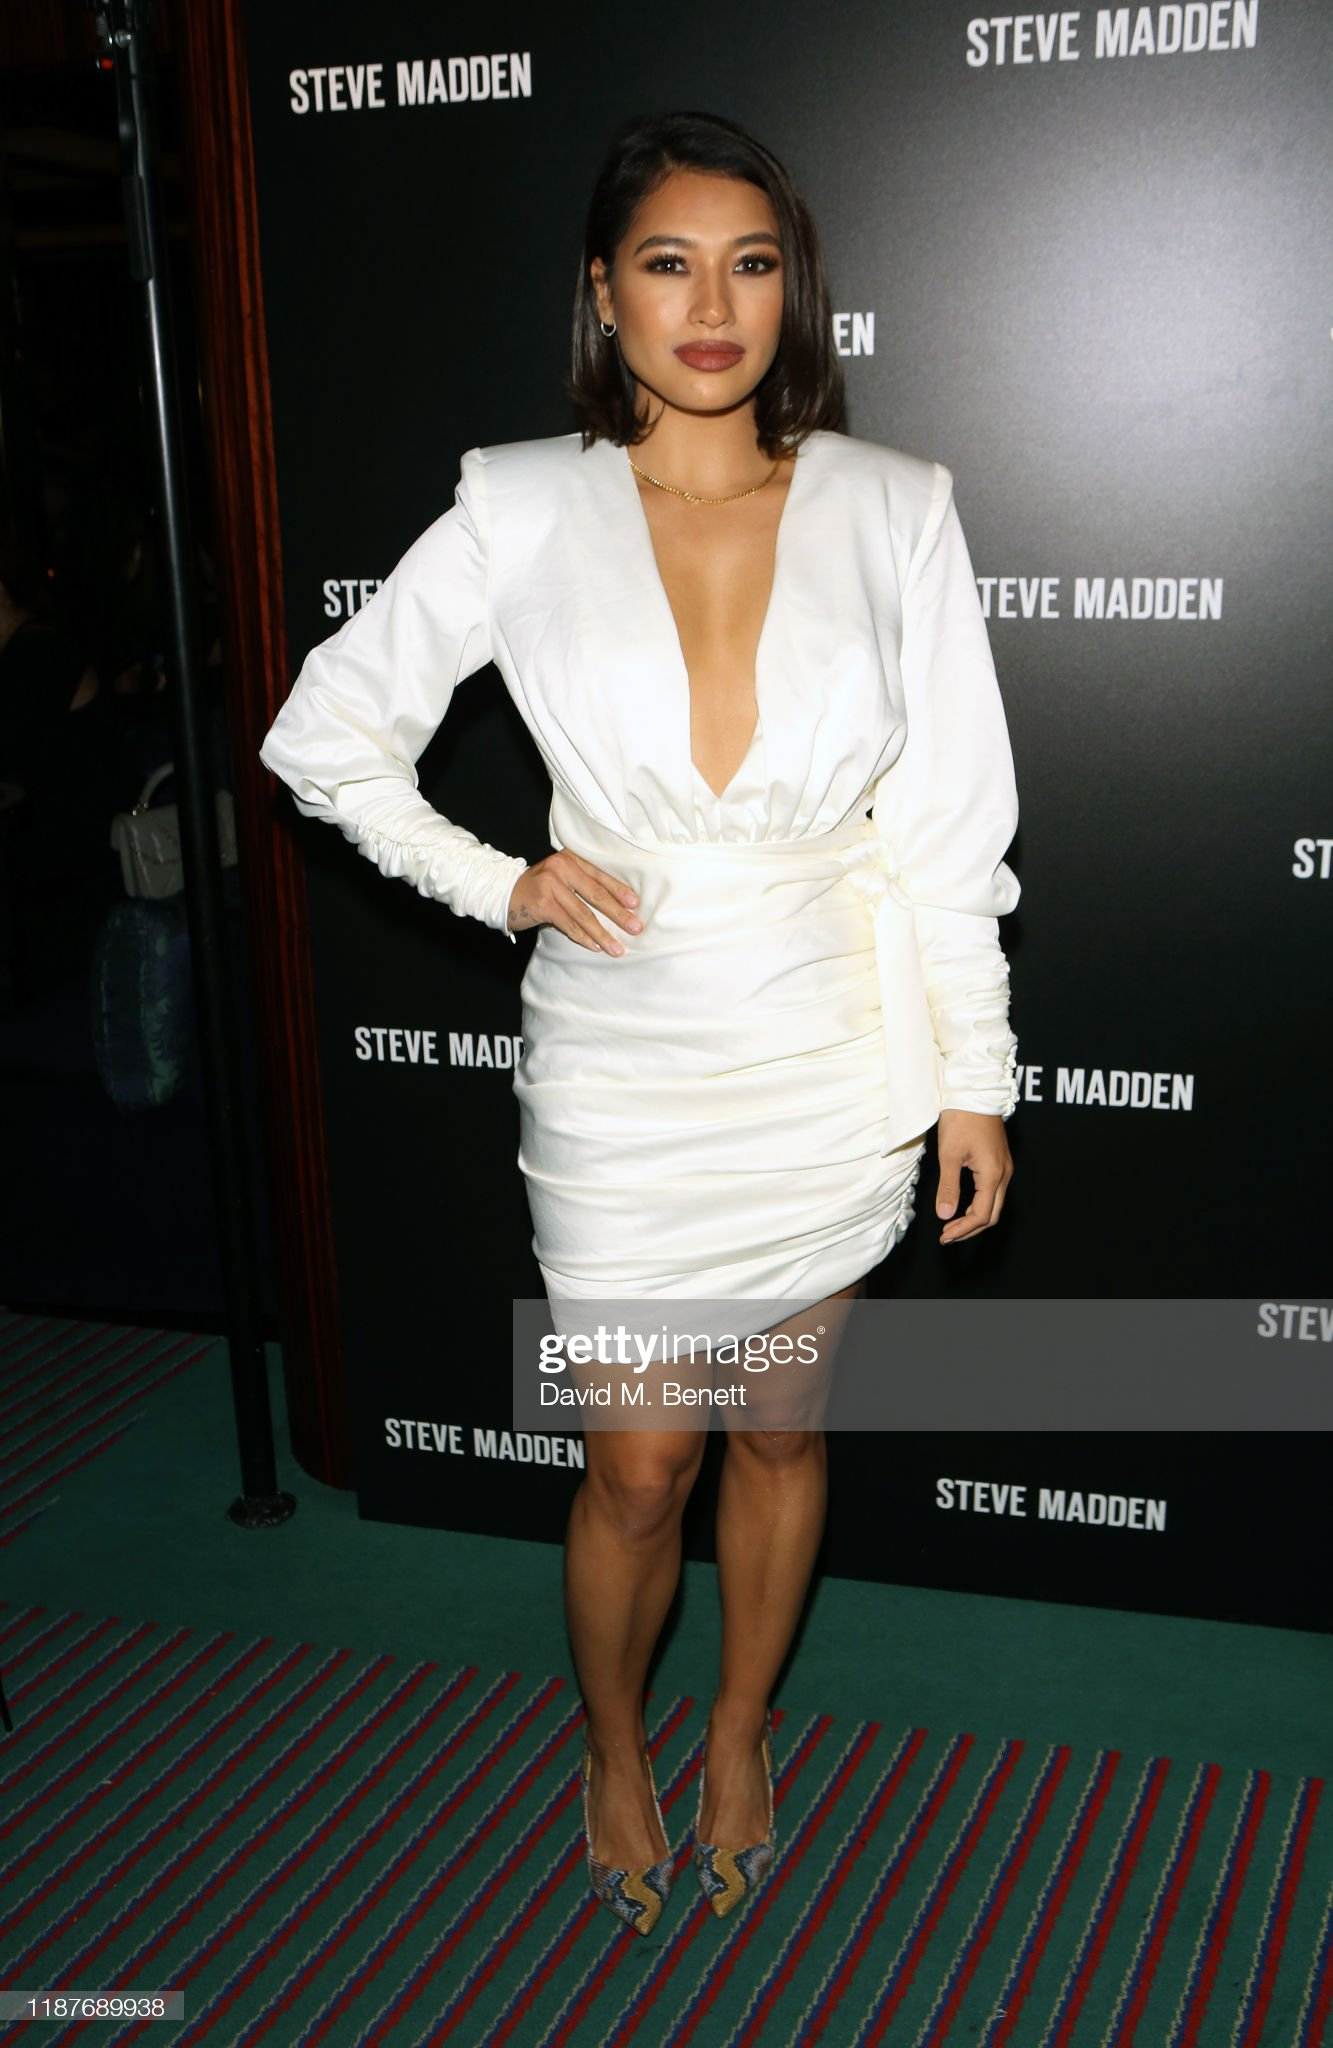 ¿Cuánto mide Vanessa White? - Altura - Real height Vanessa-white-attends-a-cocktail-party-to-celebrate-steve-maddens-picture-id1187689938?s=2048x2048